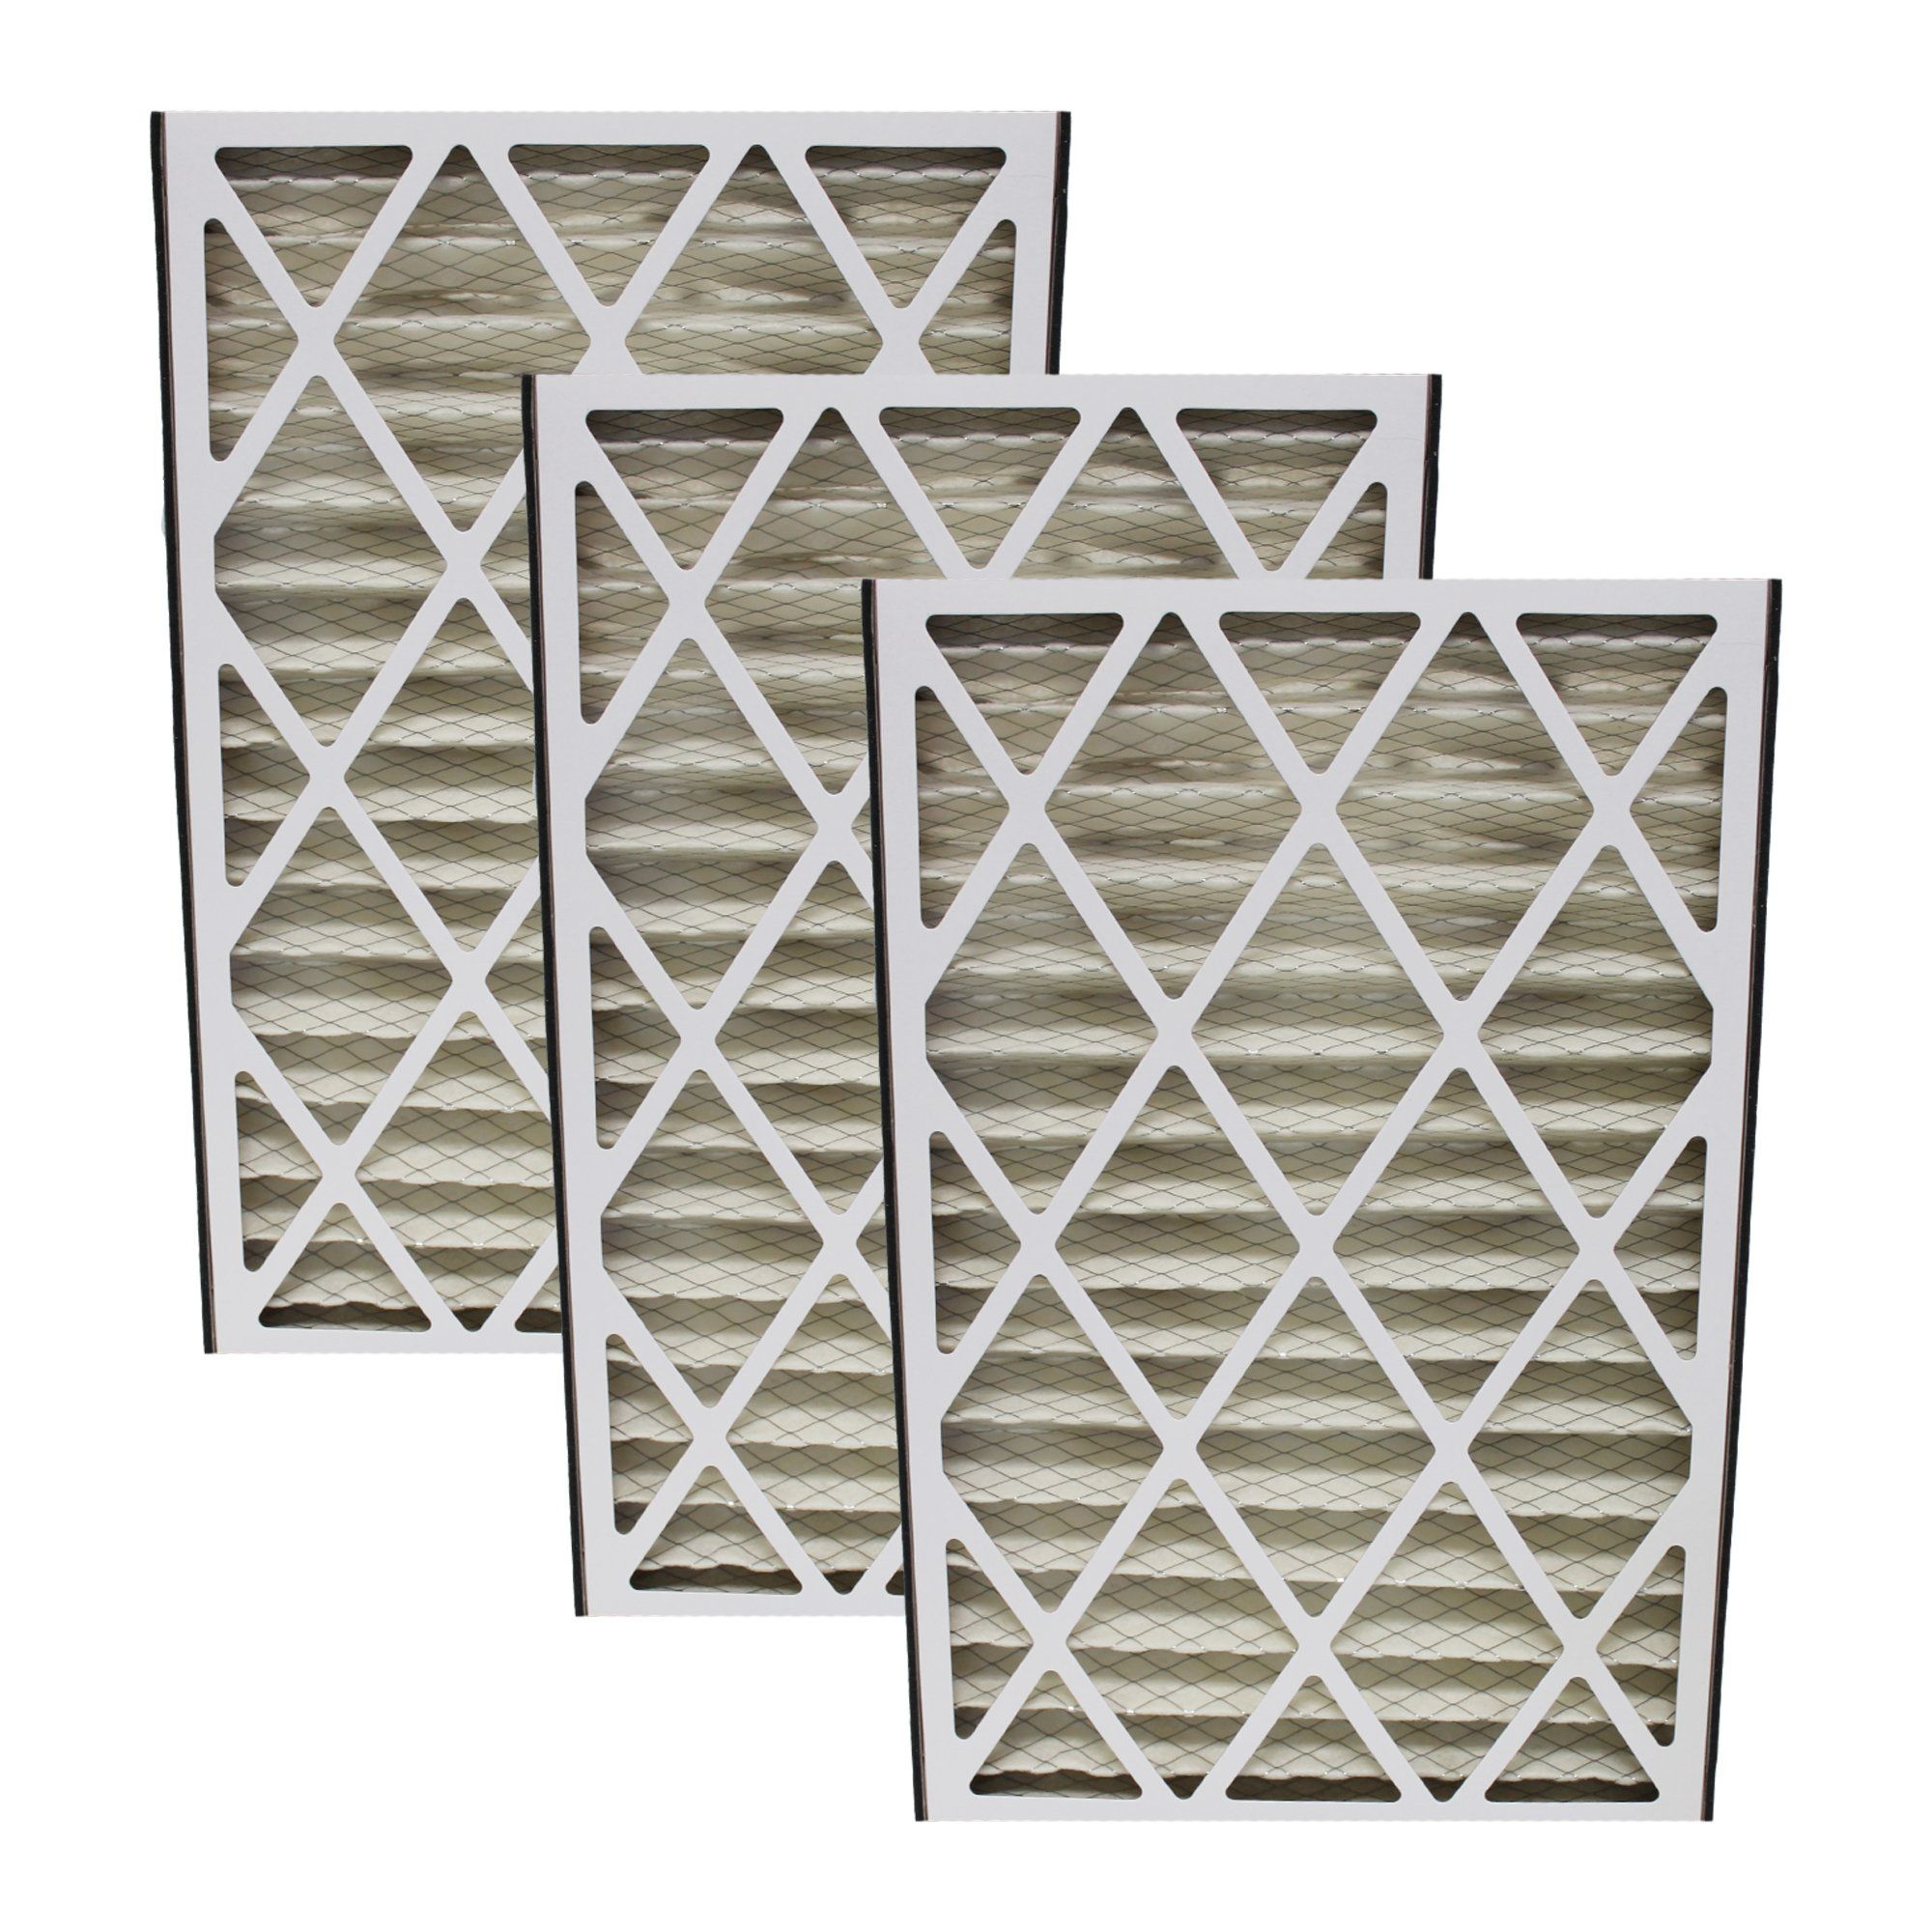 Crucial Air Replacement Air Filters Pleated Furnace Filter Parts Compatible With Trion Air Bear Part 255649 101 Merv 8 For Purified Cleaner Breathe Healthy A Furnace Filters Air Filter Furnace